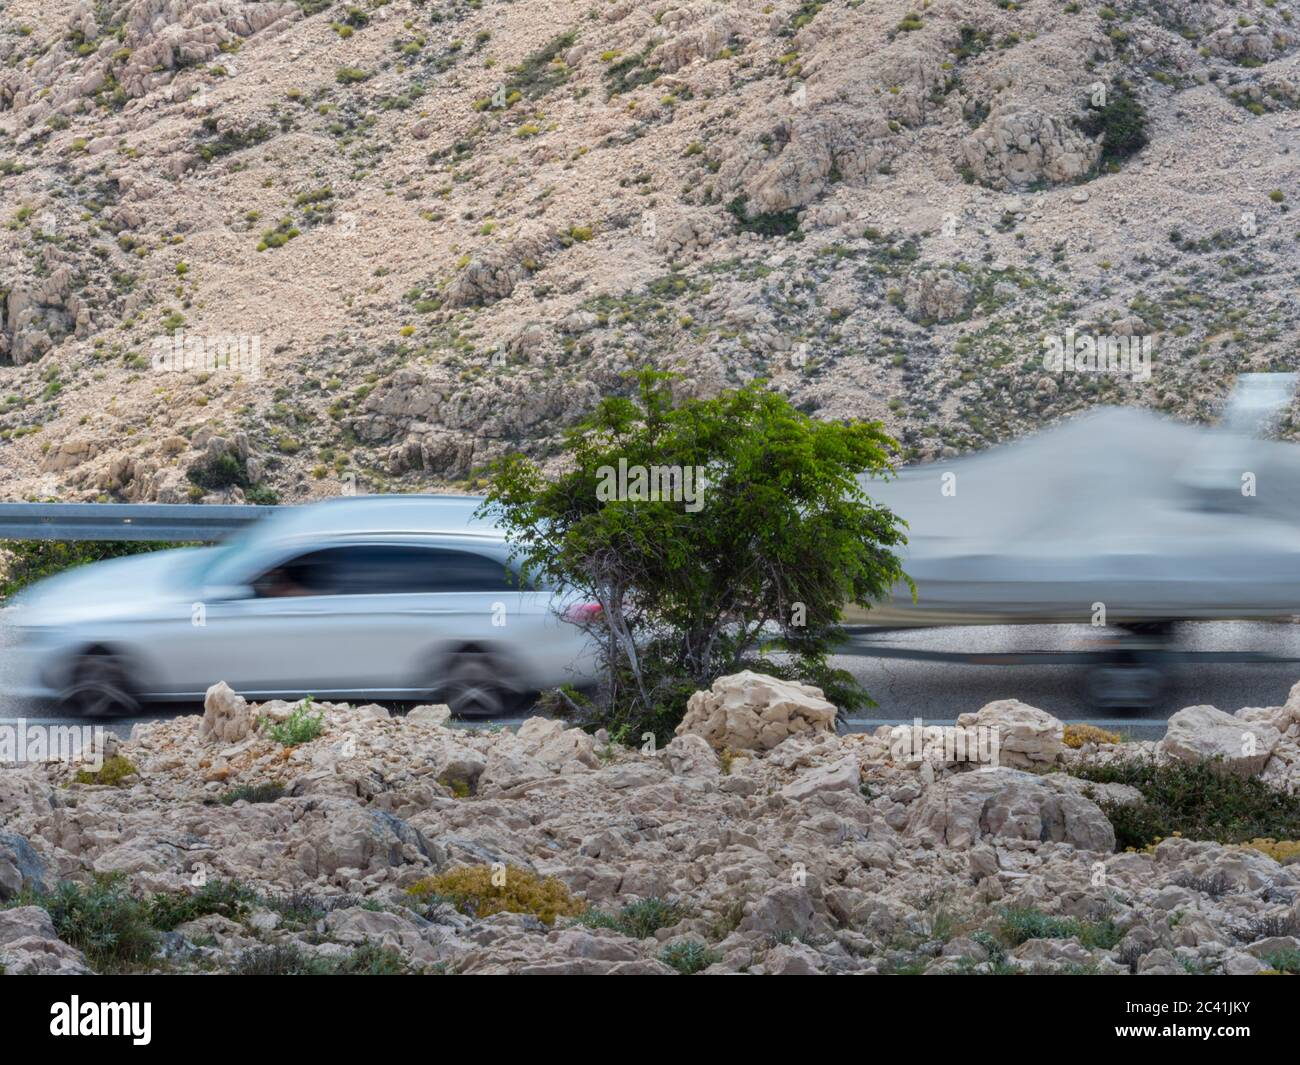 White car vehicle with trailing trailer carrying boat passing by intentionally blurry conveying speed Stock Photo